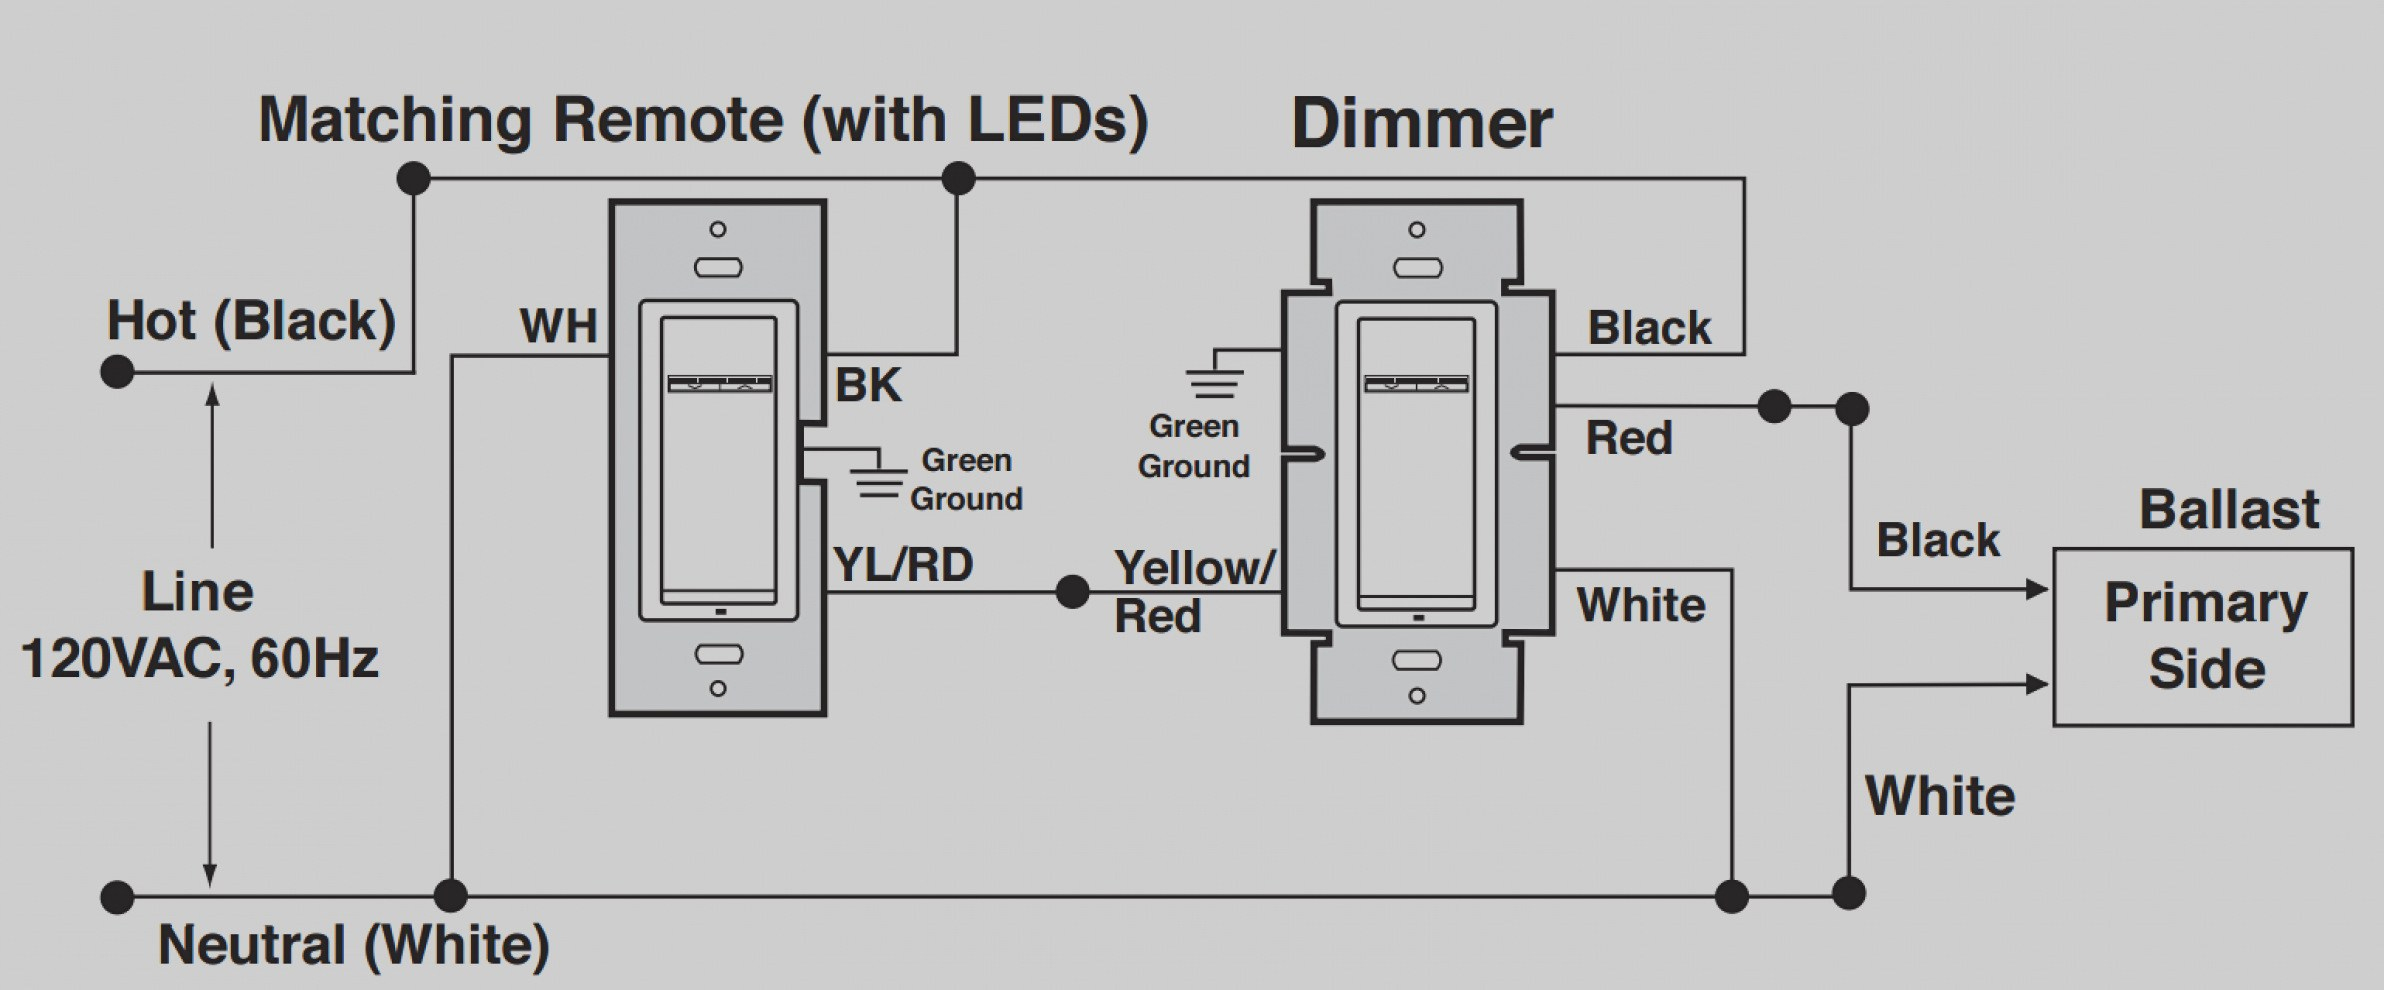 Wiring Diagram For 3 Way Dimmer Switch from annawiringdiagram.com